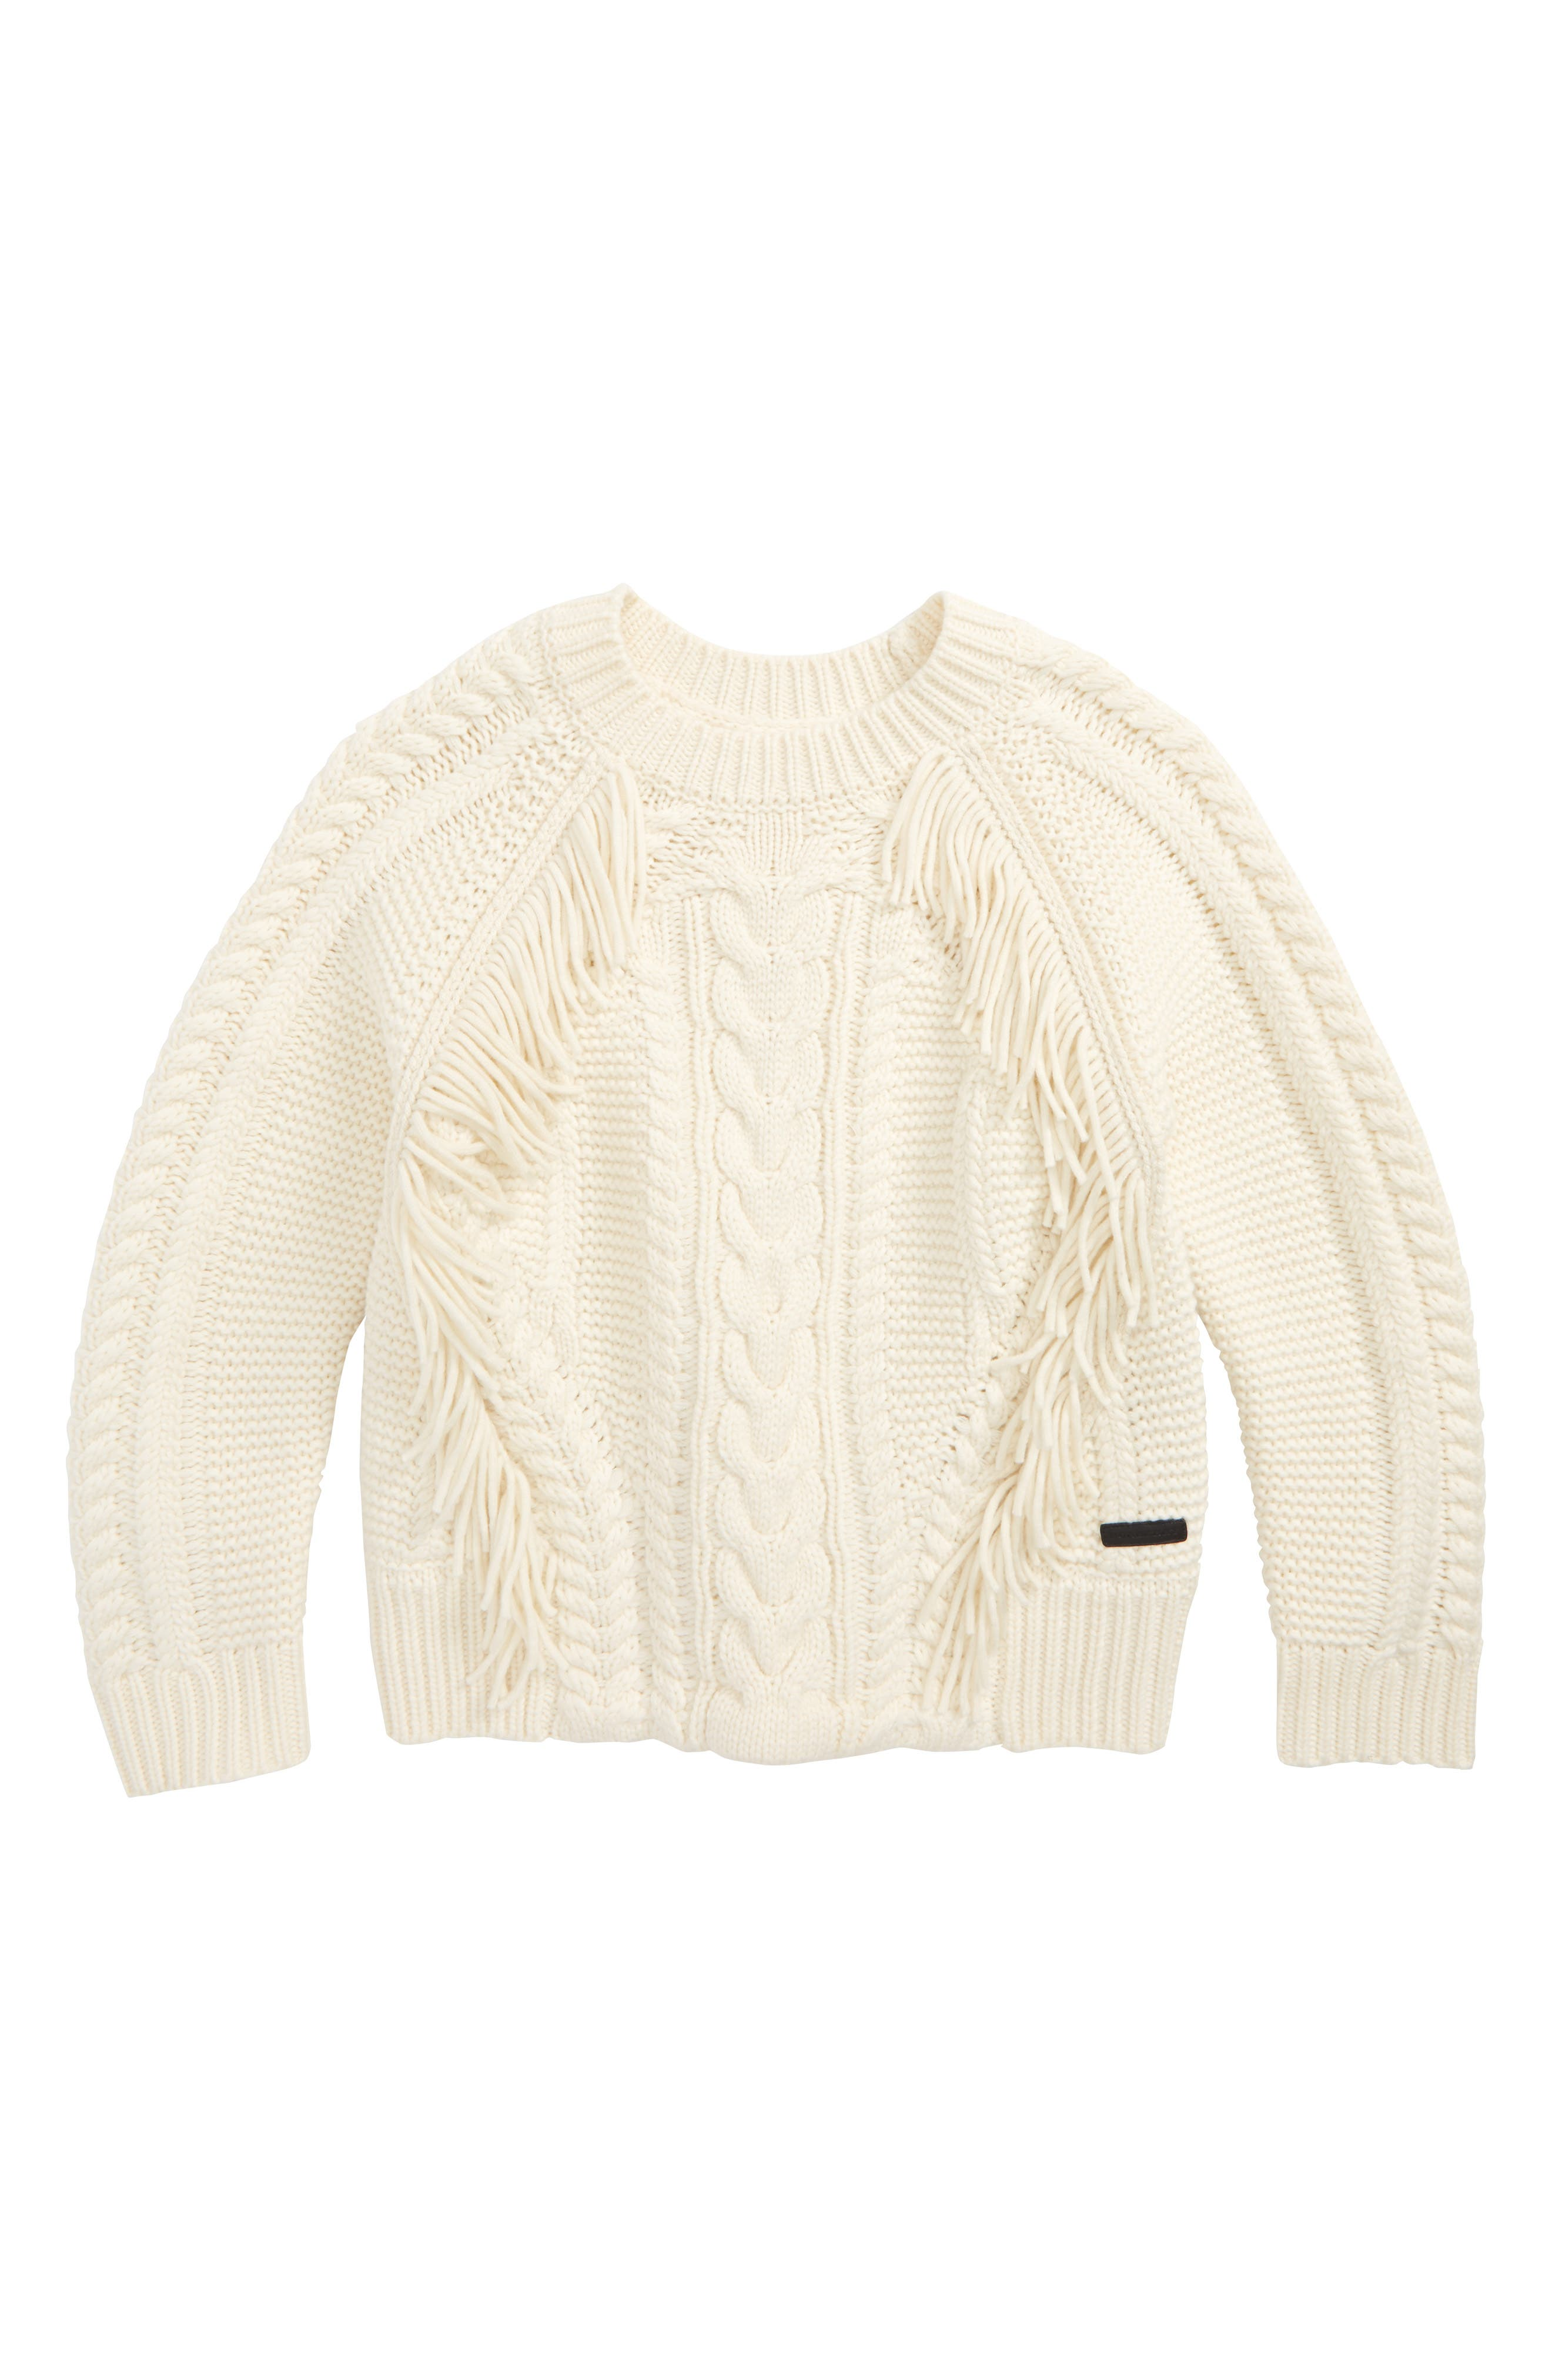 Alternate Image 1 Selected - Burberry Natasia Cable Knit Sweater (Little Girls & Big Girls)